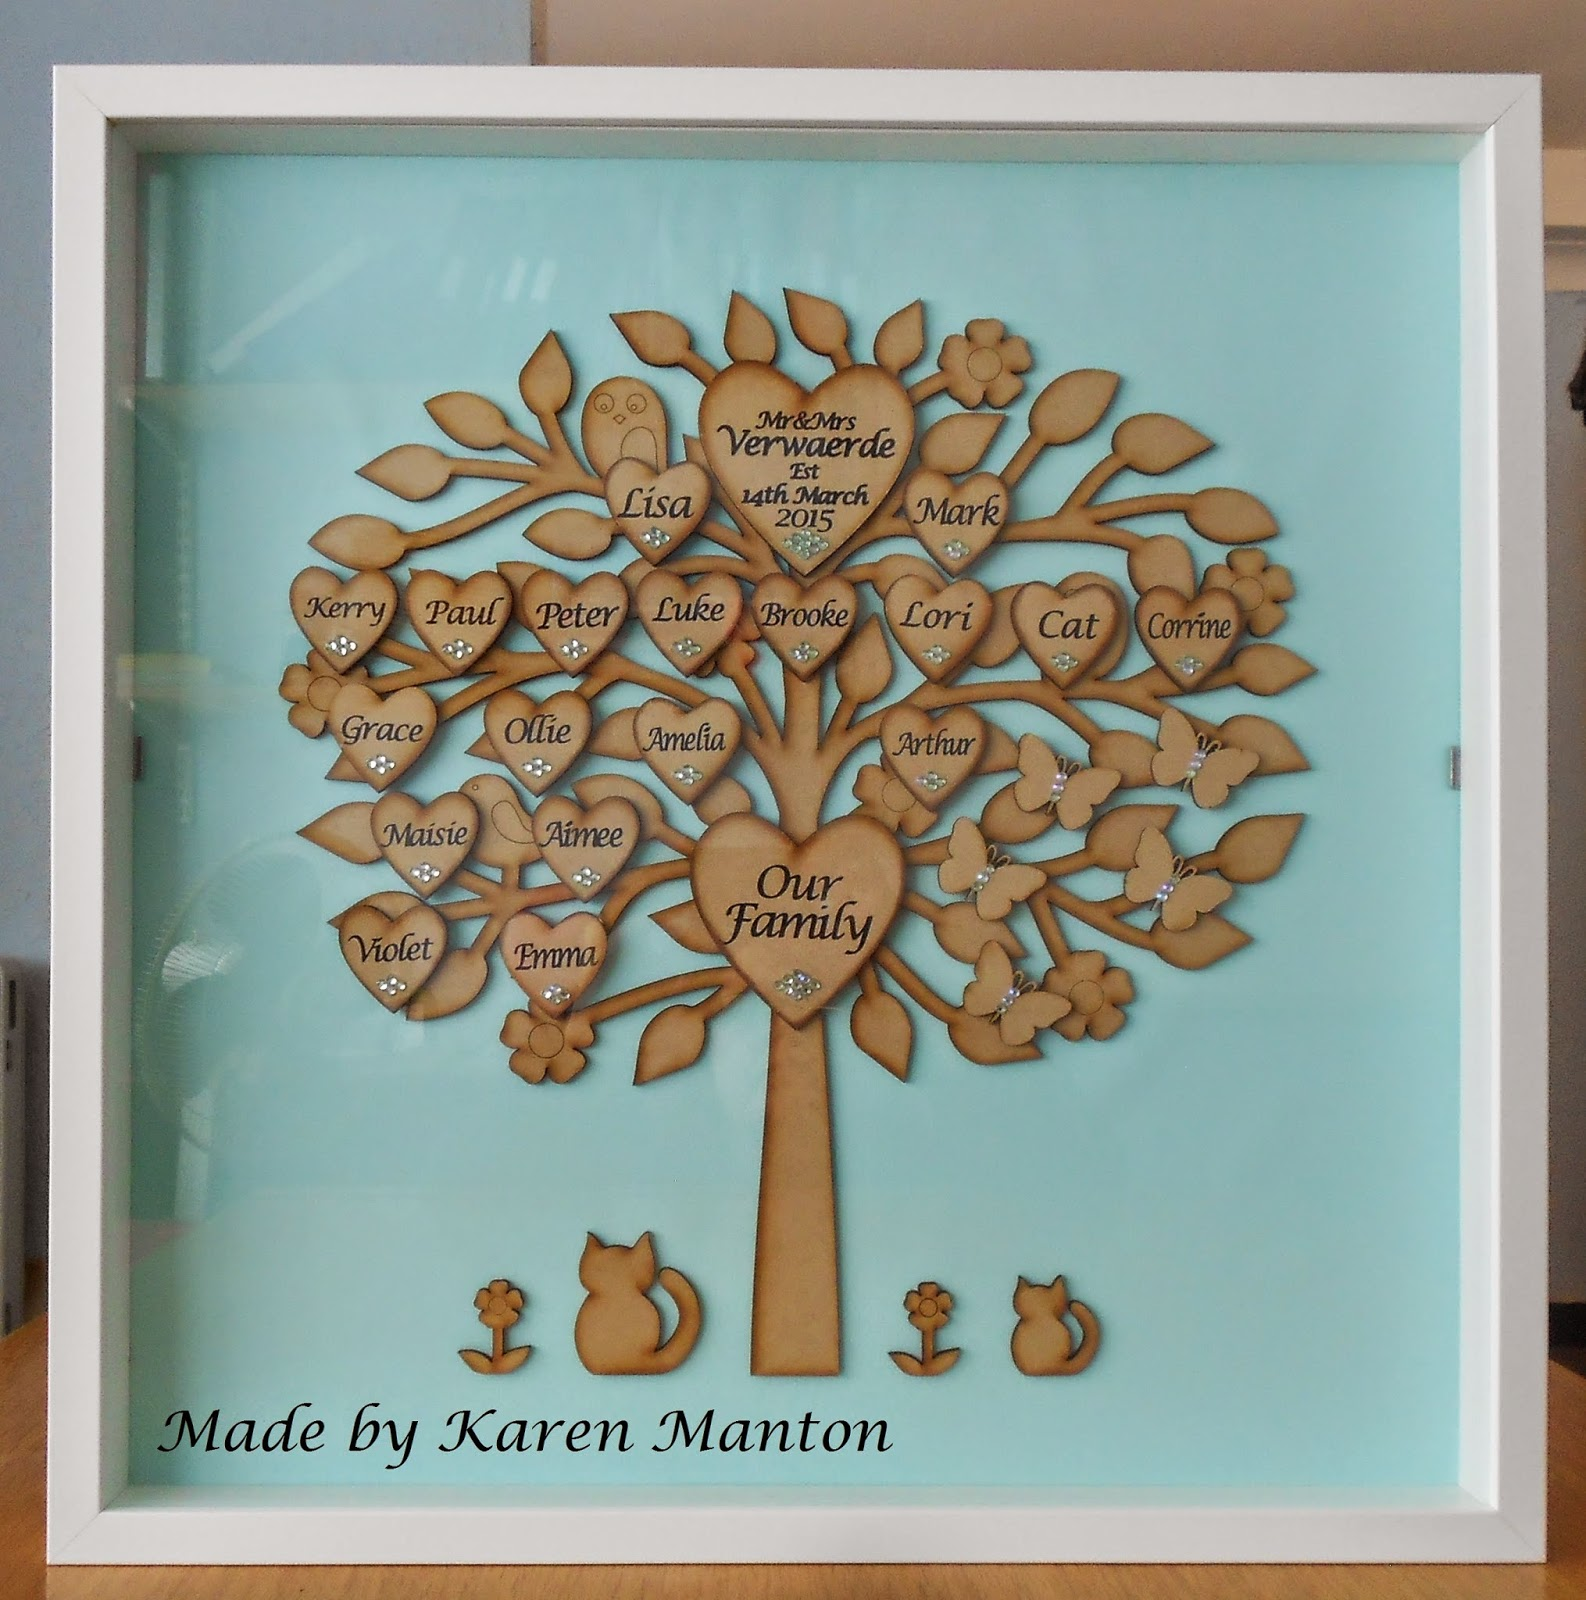 Big family picture frames image collections craft decoration ideas big family tree picture frame image collections craft decoration big family tree picture frame gallery craft jeuxipadfo Choice Image